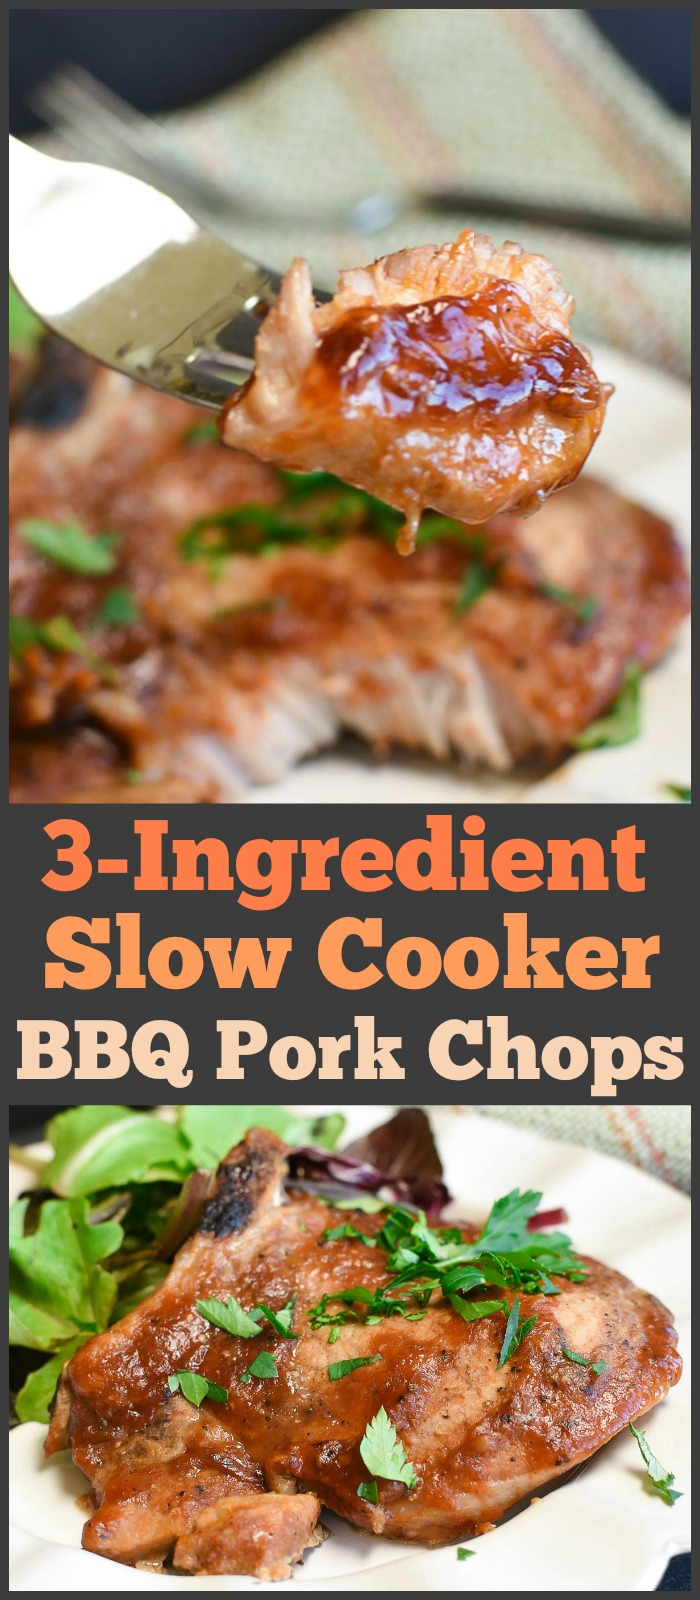 These slow cooker BBQ Pork Chops only need three ingredients and a few minutes to throw together. They will become one of your go-to family dinners! #crockpot #slowcooker #pork #porkchops